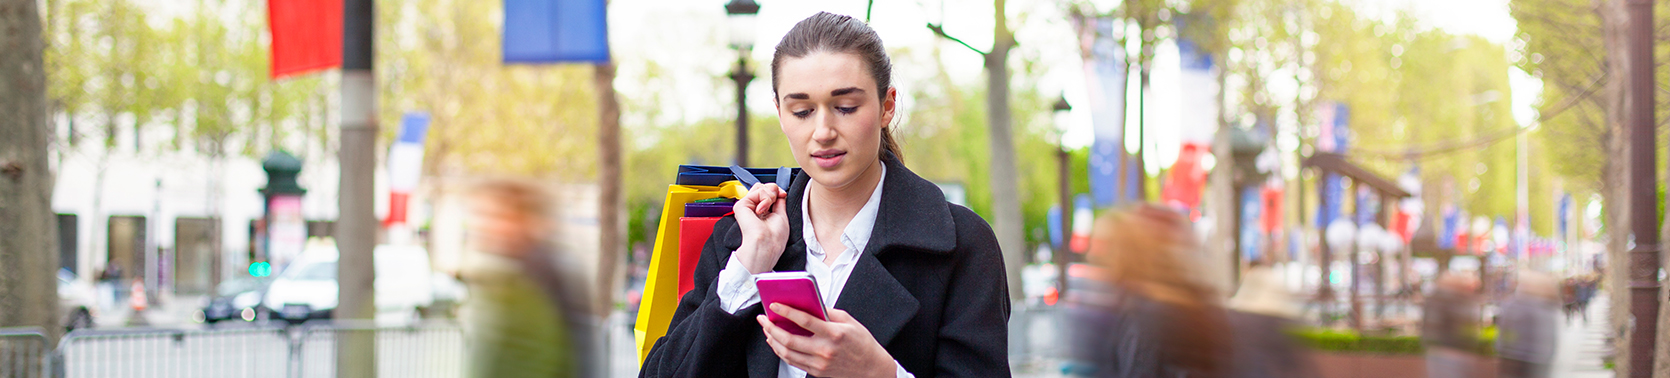 woman looking at her mobile phone